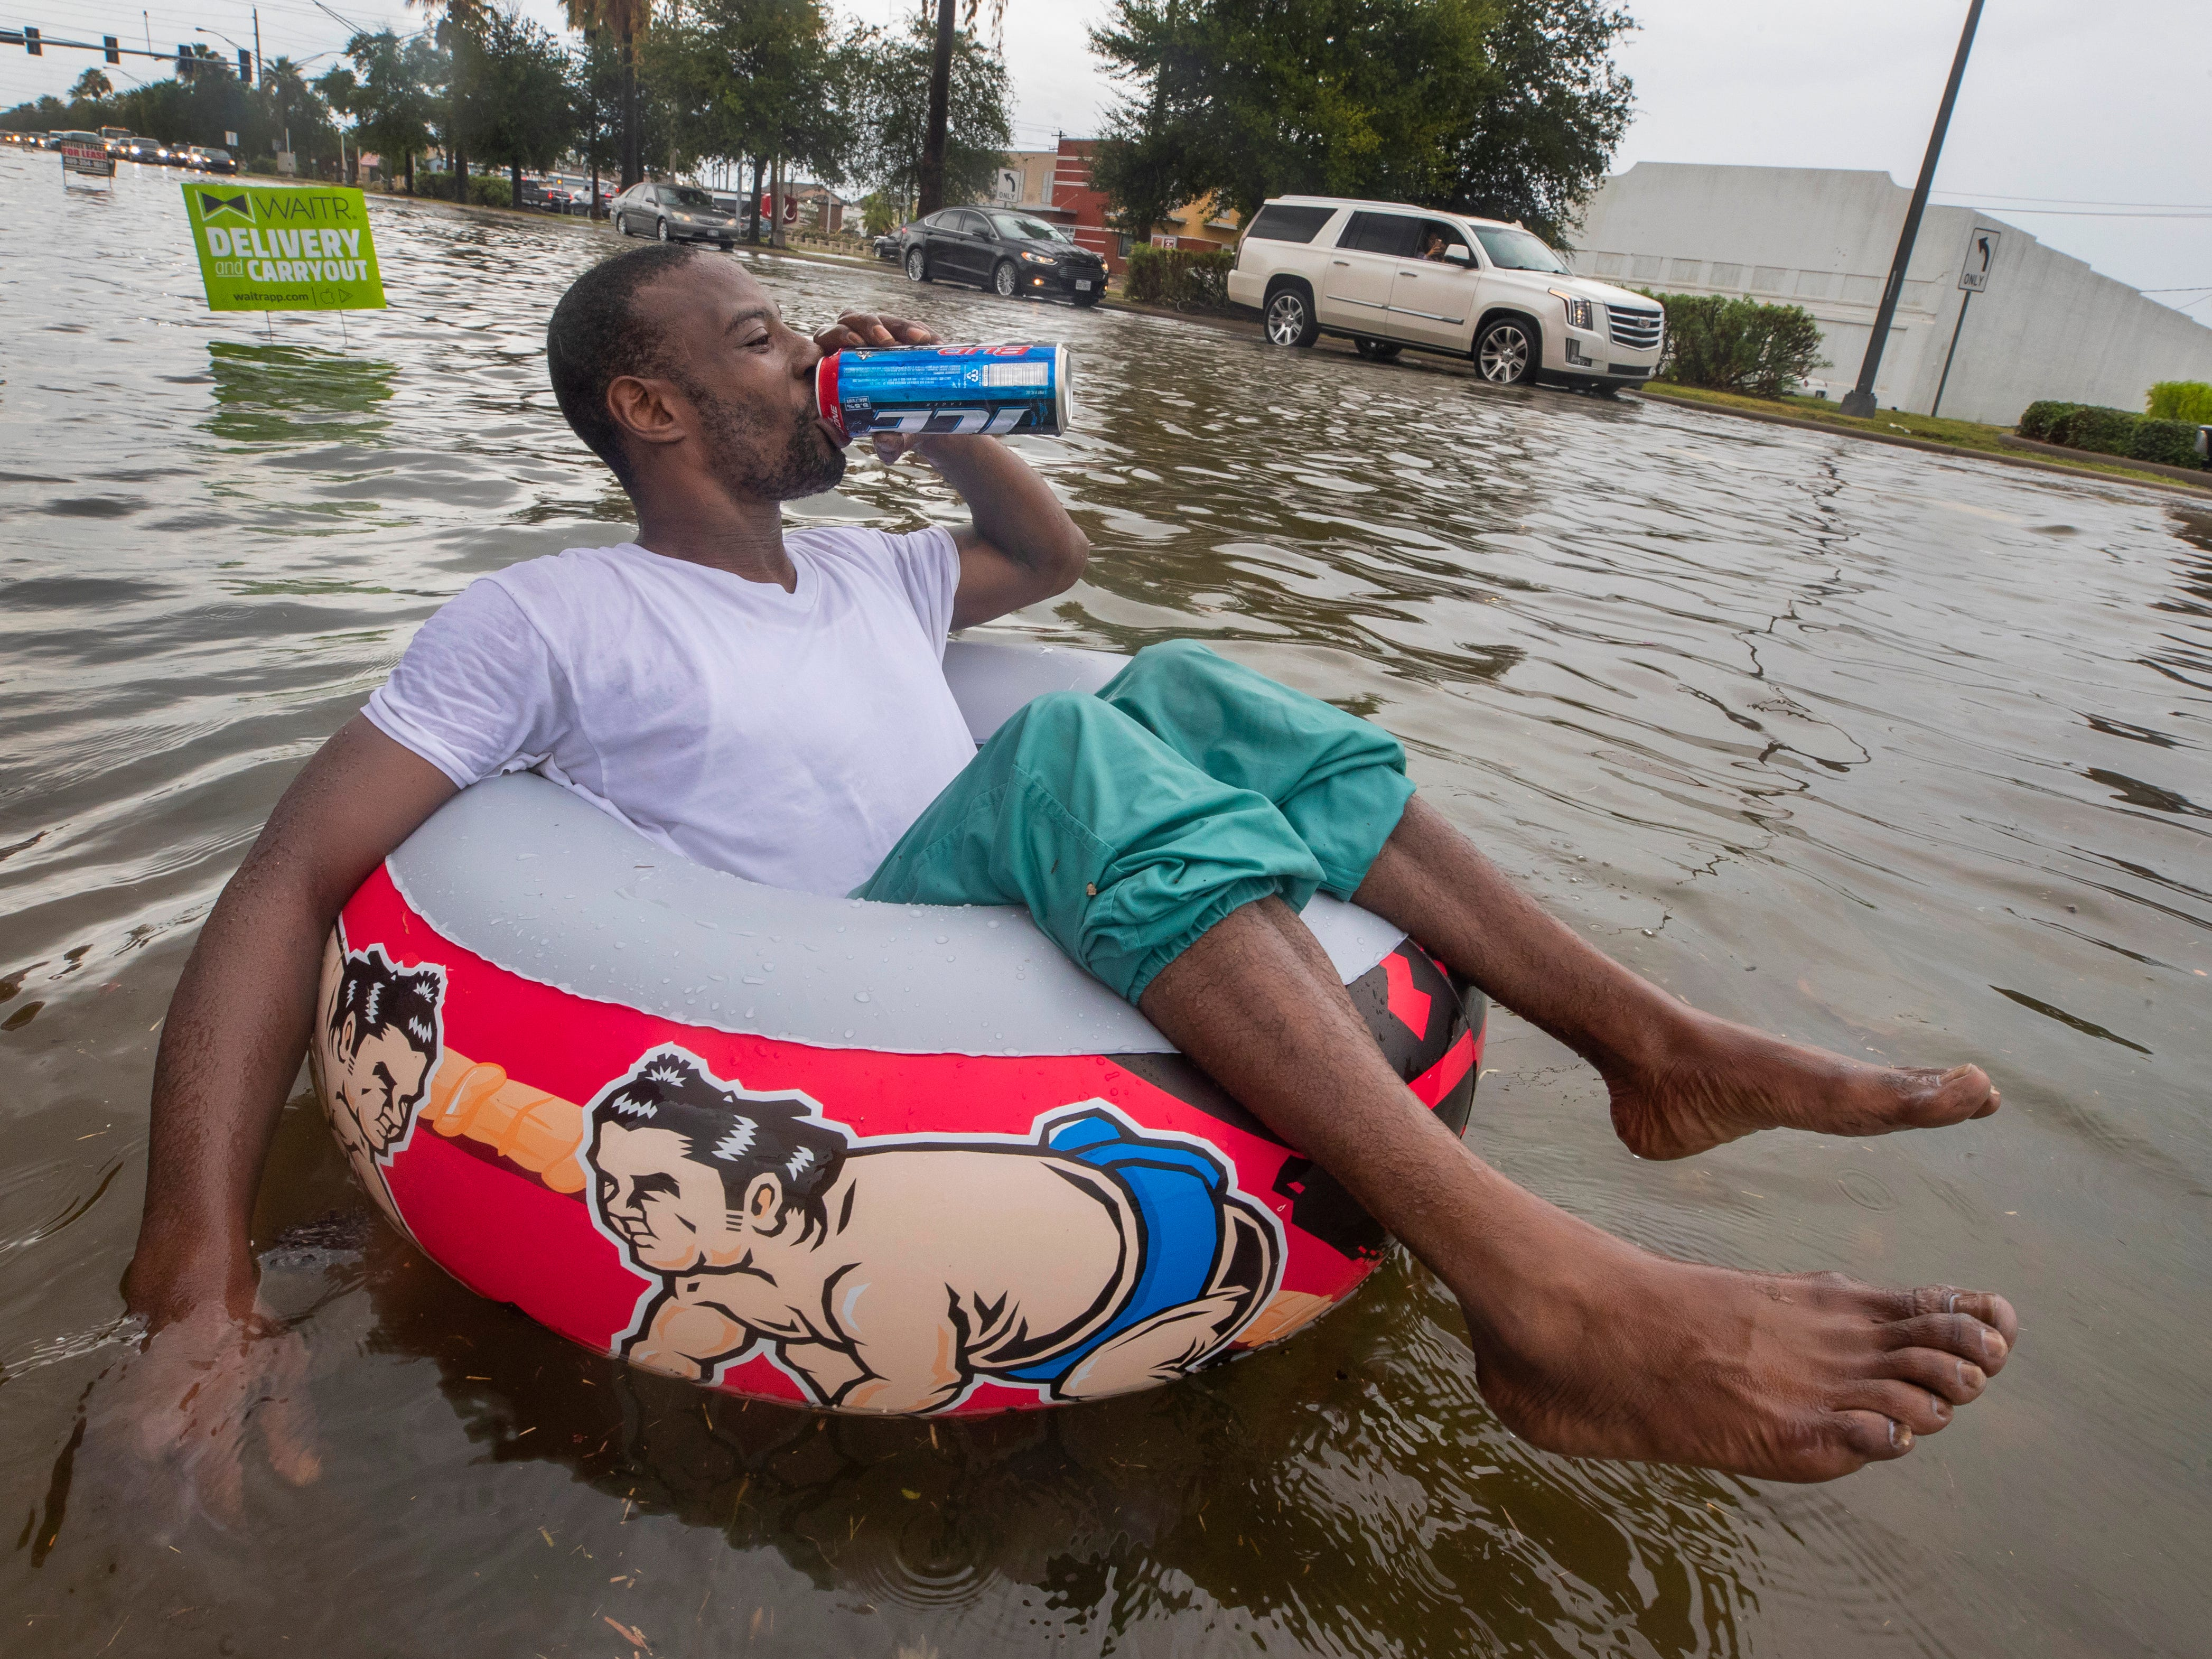 Johnny Jones drinks a beer while floating and watching a single-file line of drivers make their way down Broadway Boulevard after heavy rains caused substantial street flooding in Galveston, Texas, on Monday, Sept. 3, 2018.